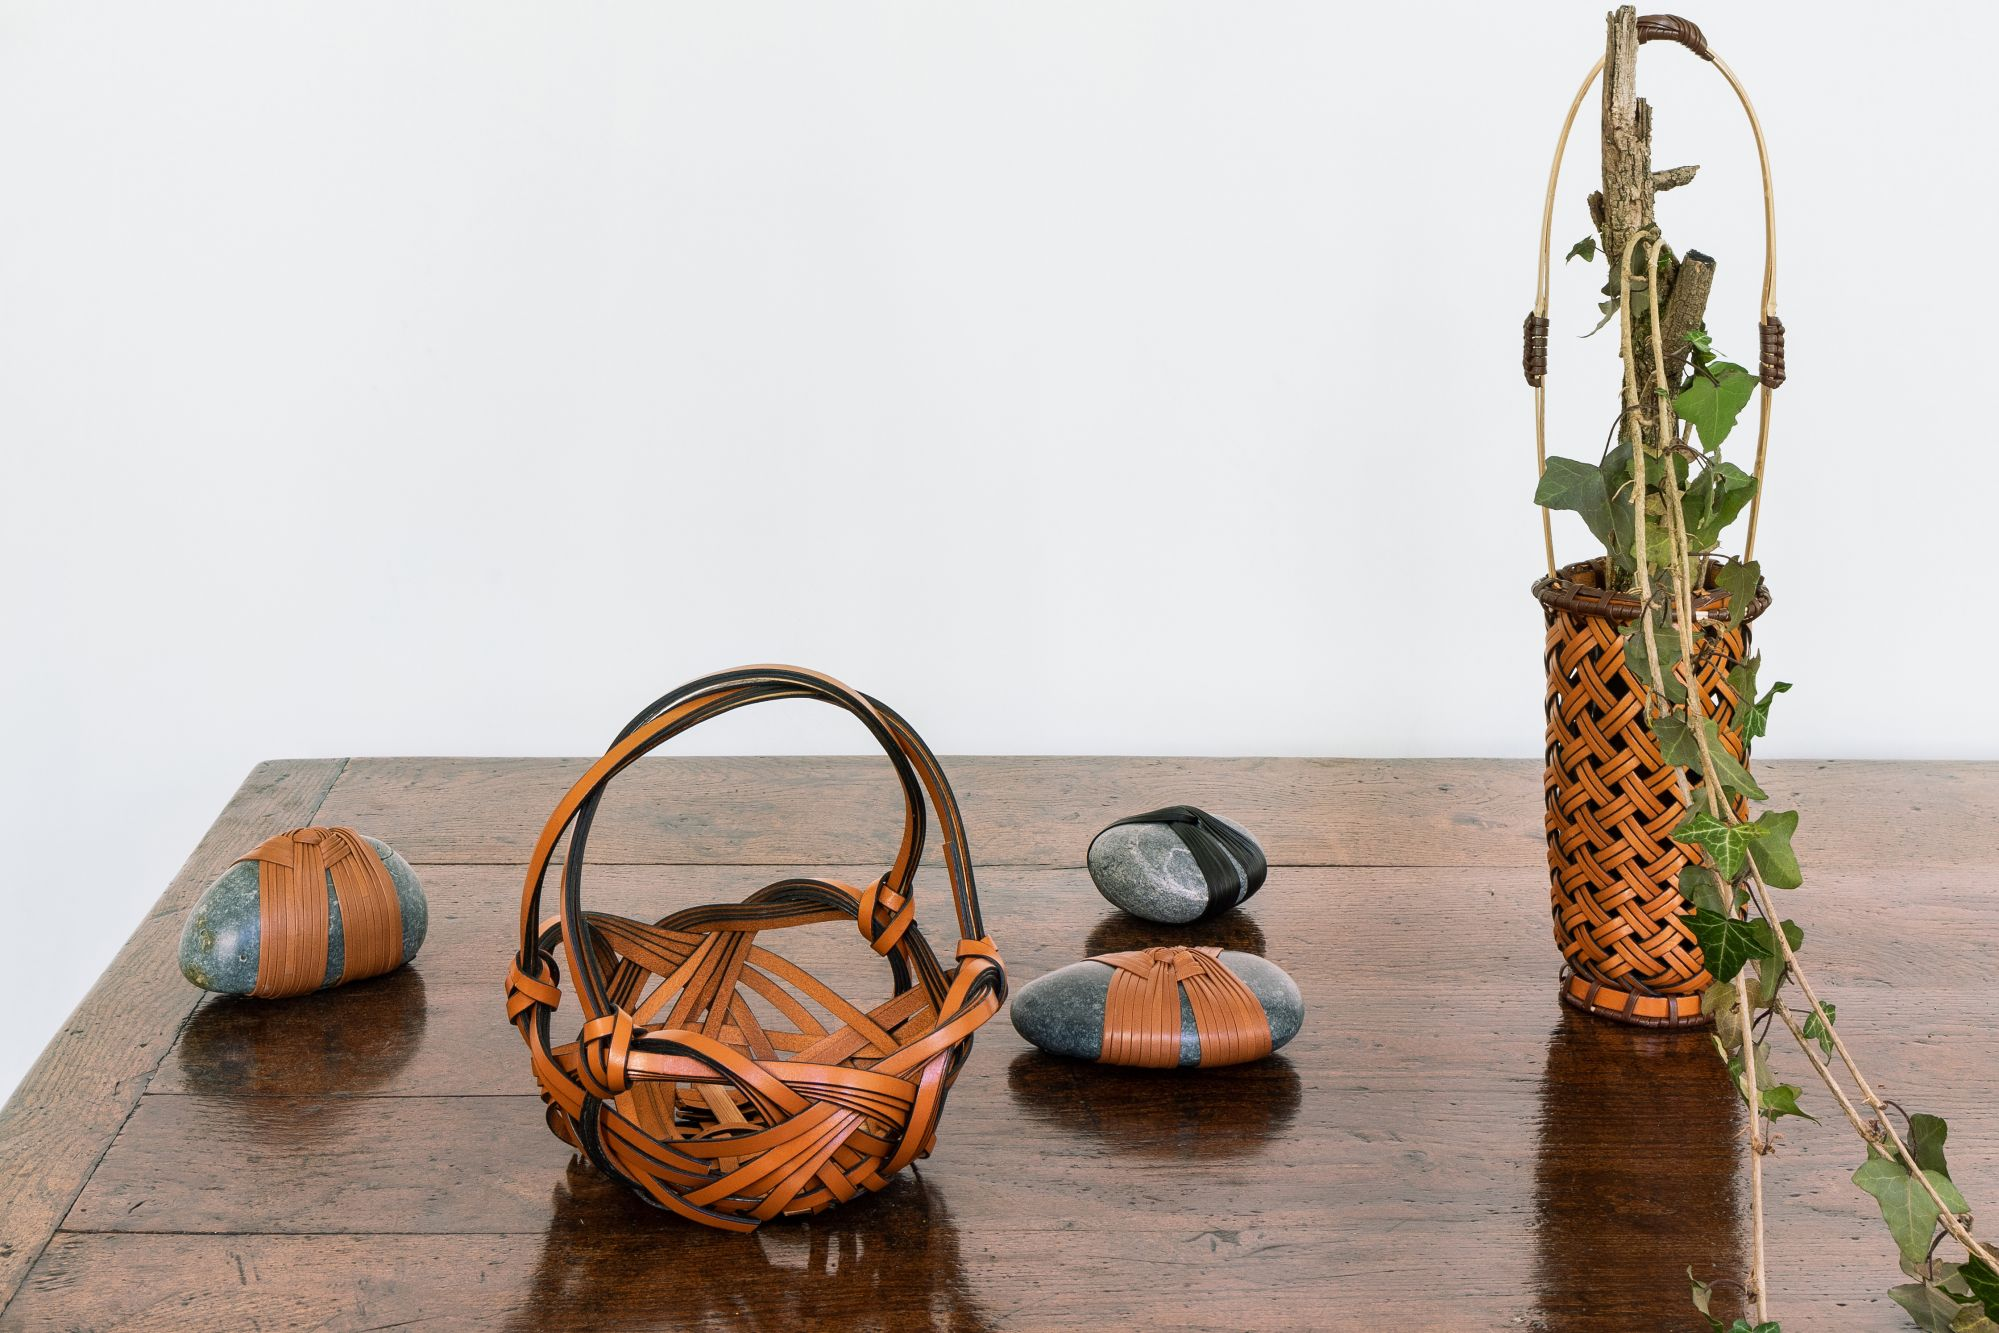 Loewe's Latest Artisan Baskets Are Wonderful Inside And Out